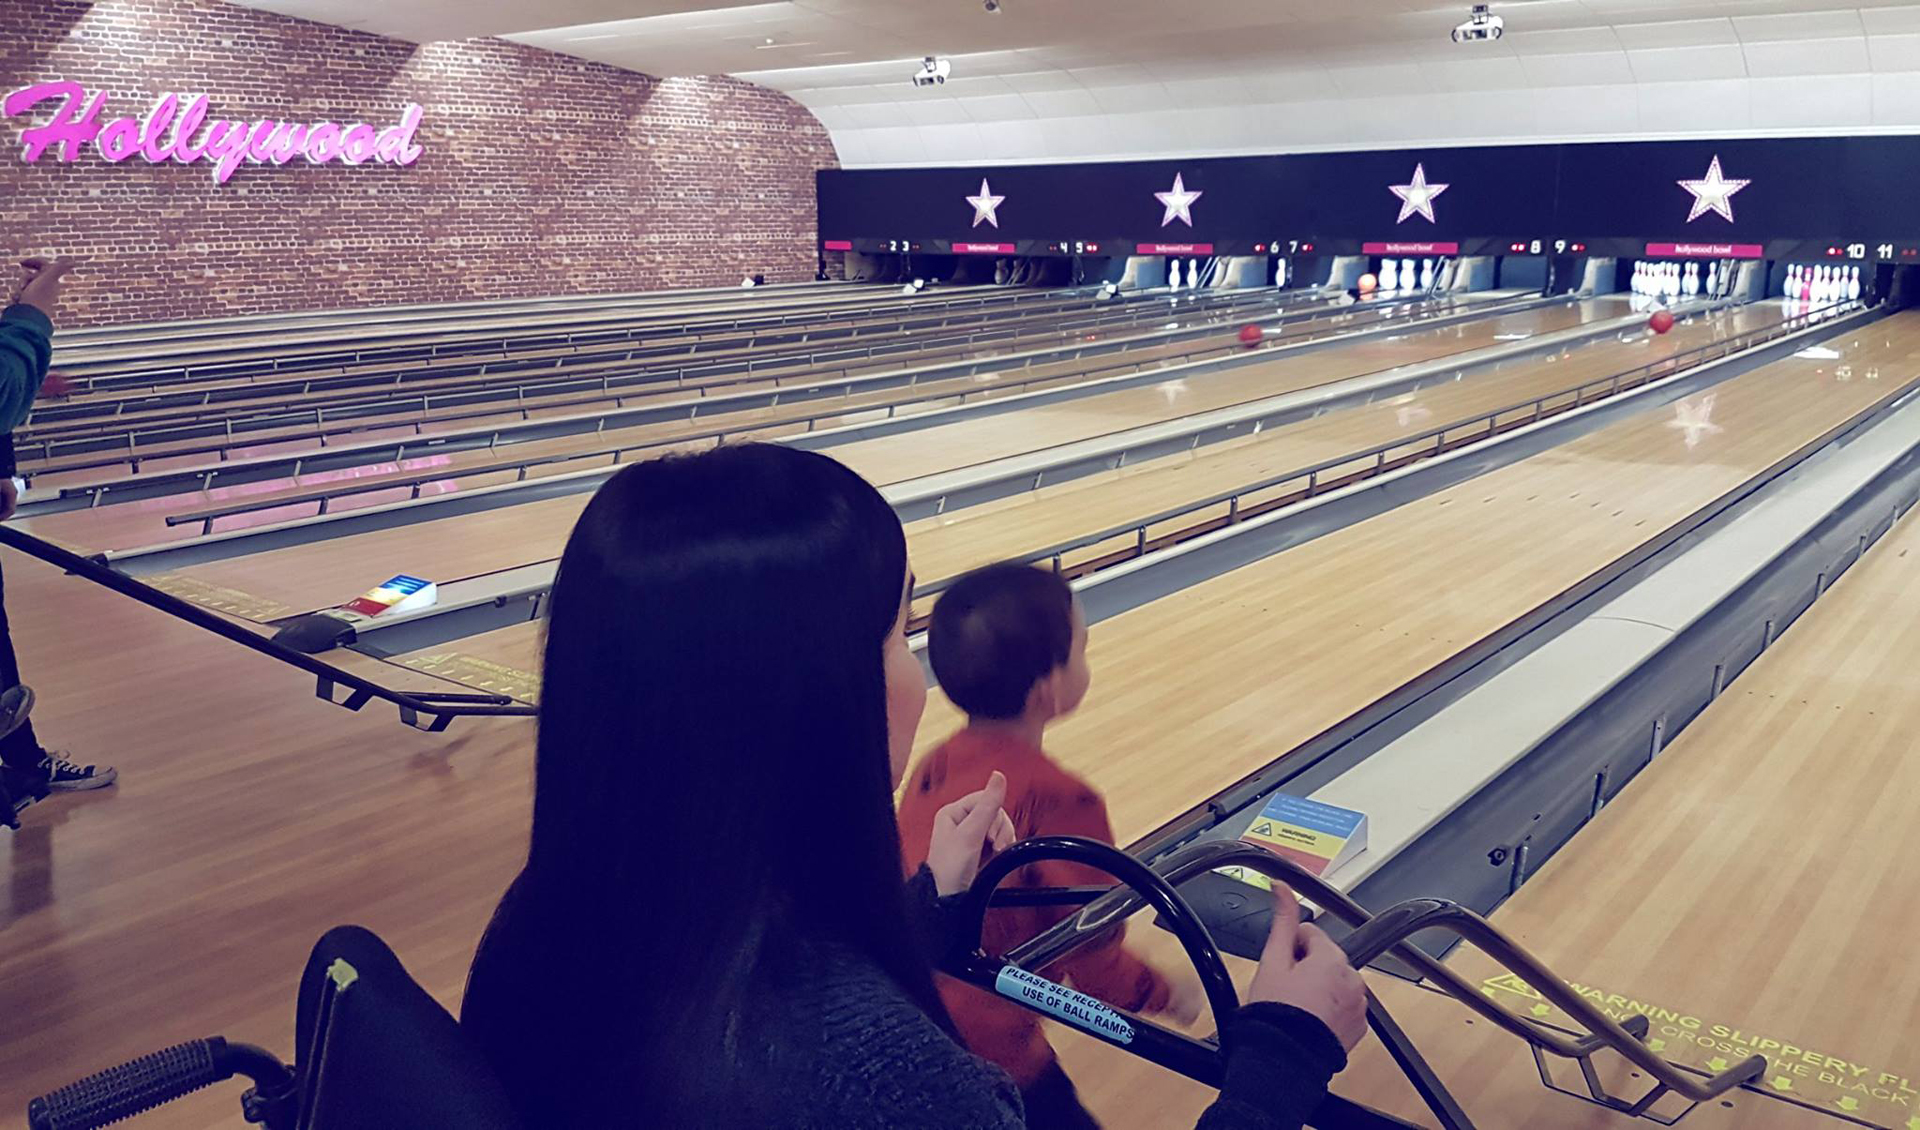 Emma of Simply Emma at ten pin bowling with her nephew using a ramp for the bowling balls.